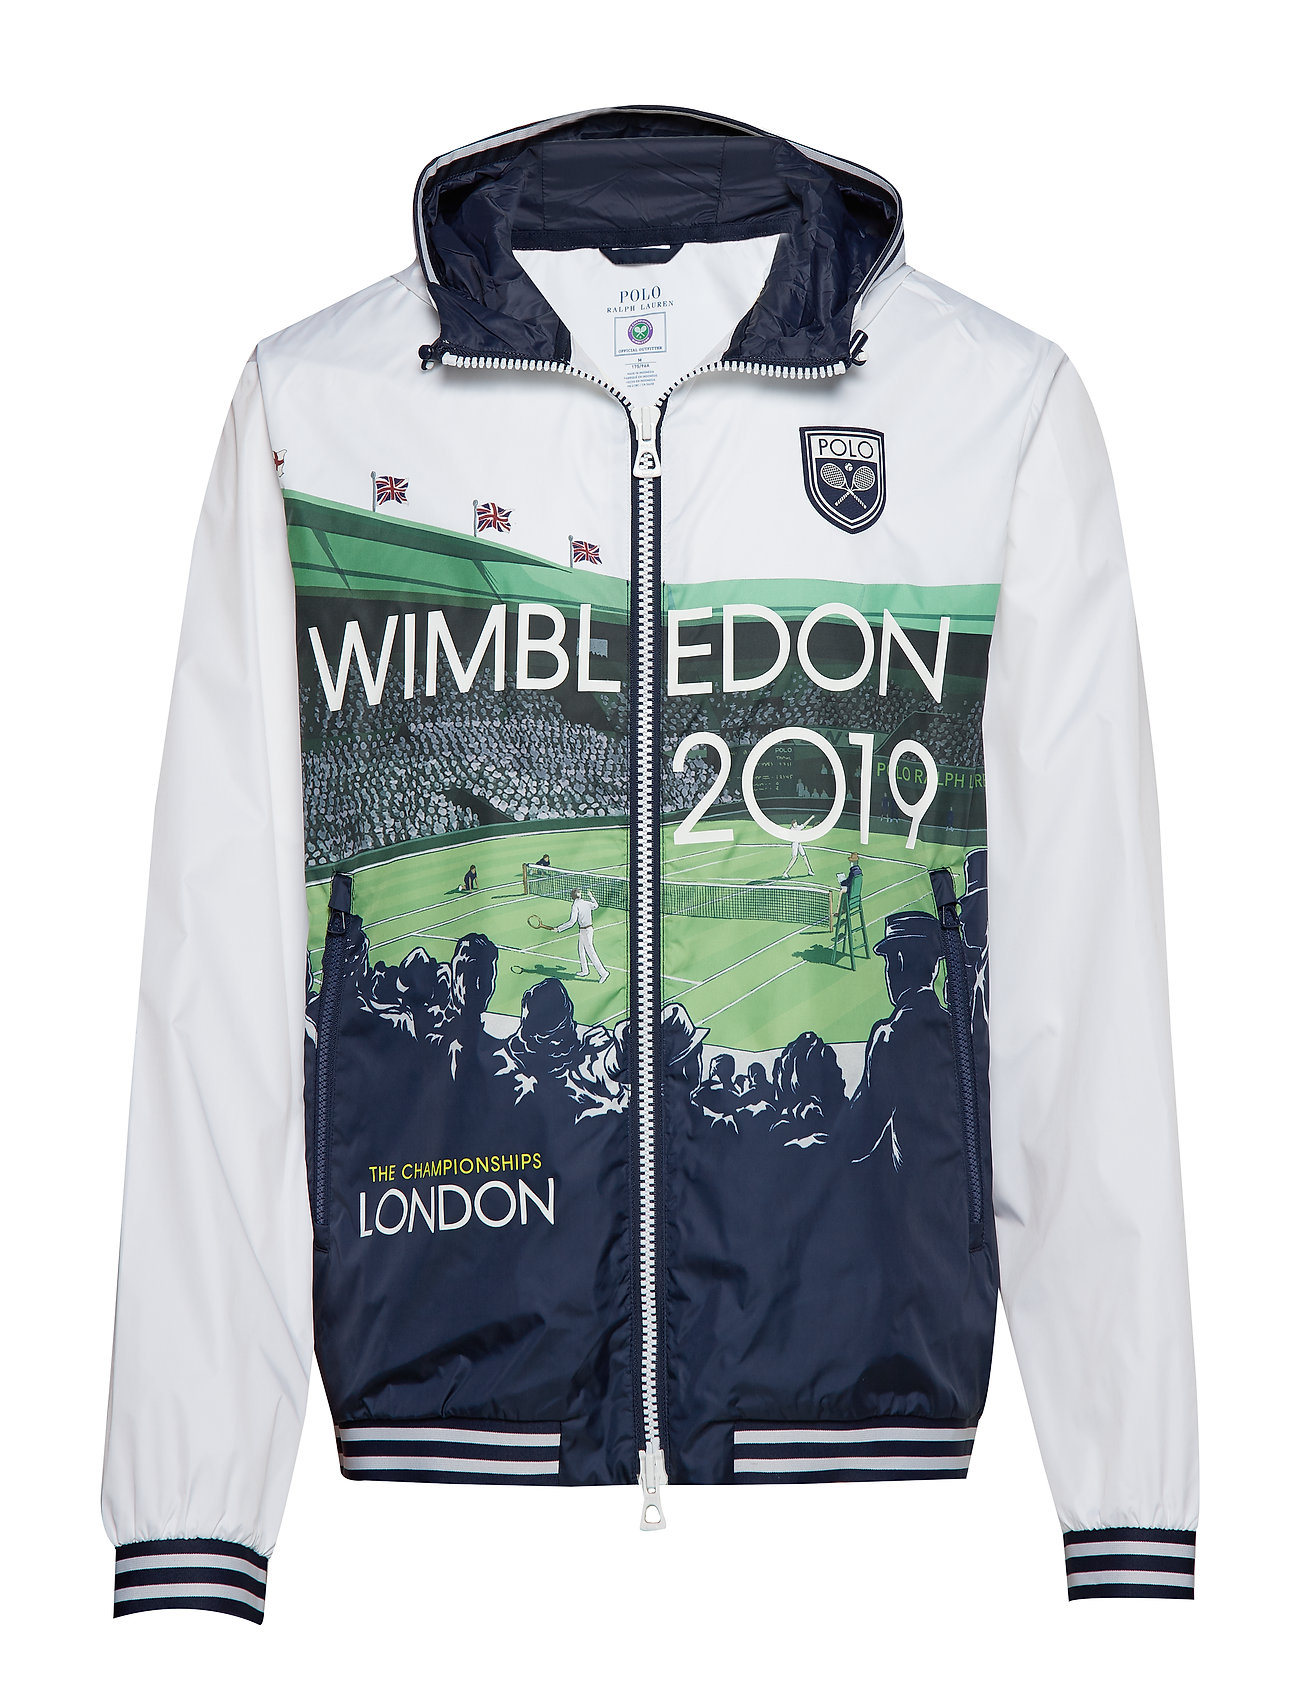 Polo Ralph Lauren Wimbledon Graphic Windbreaker - WIMBLEDON 2019 PO